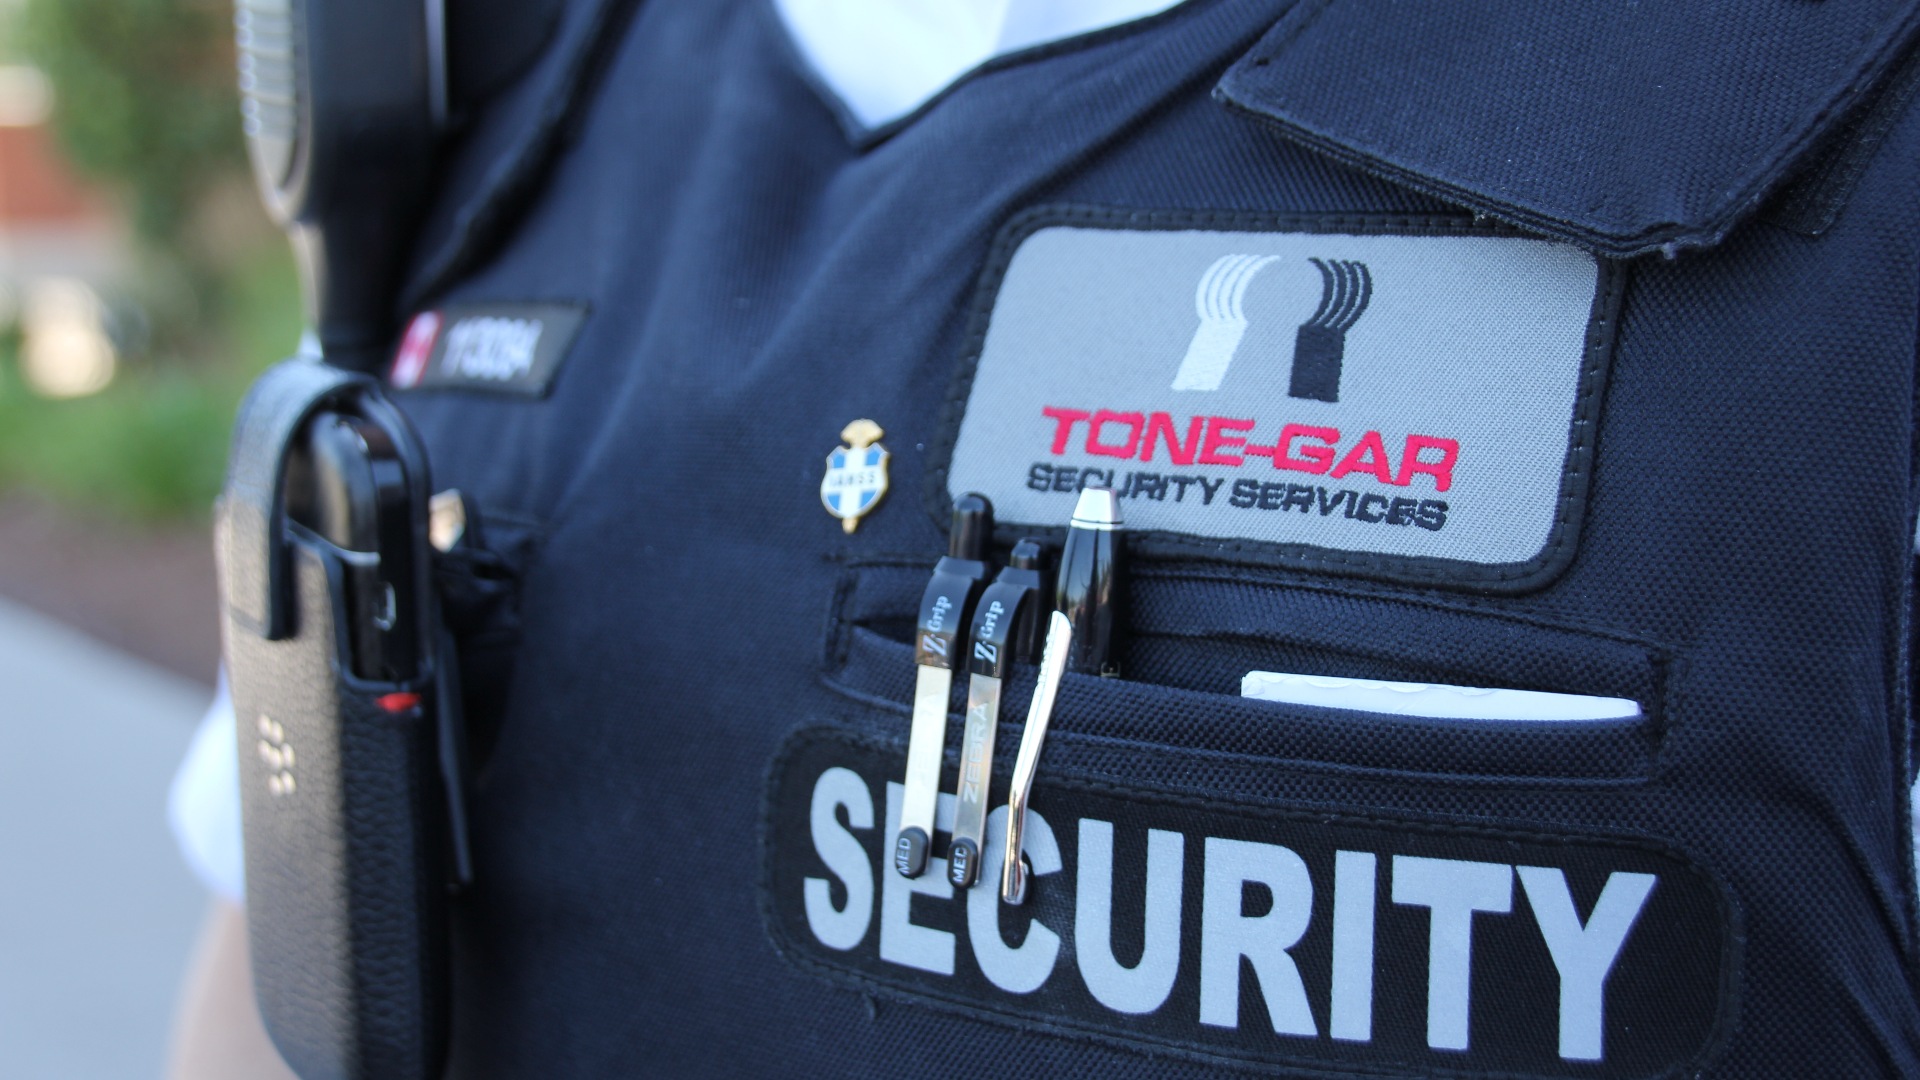 SECURITY & SERVICE GO HAND IN HAND